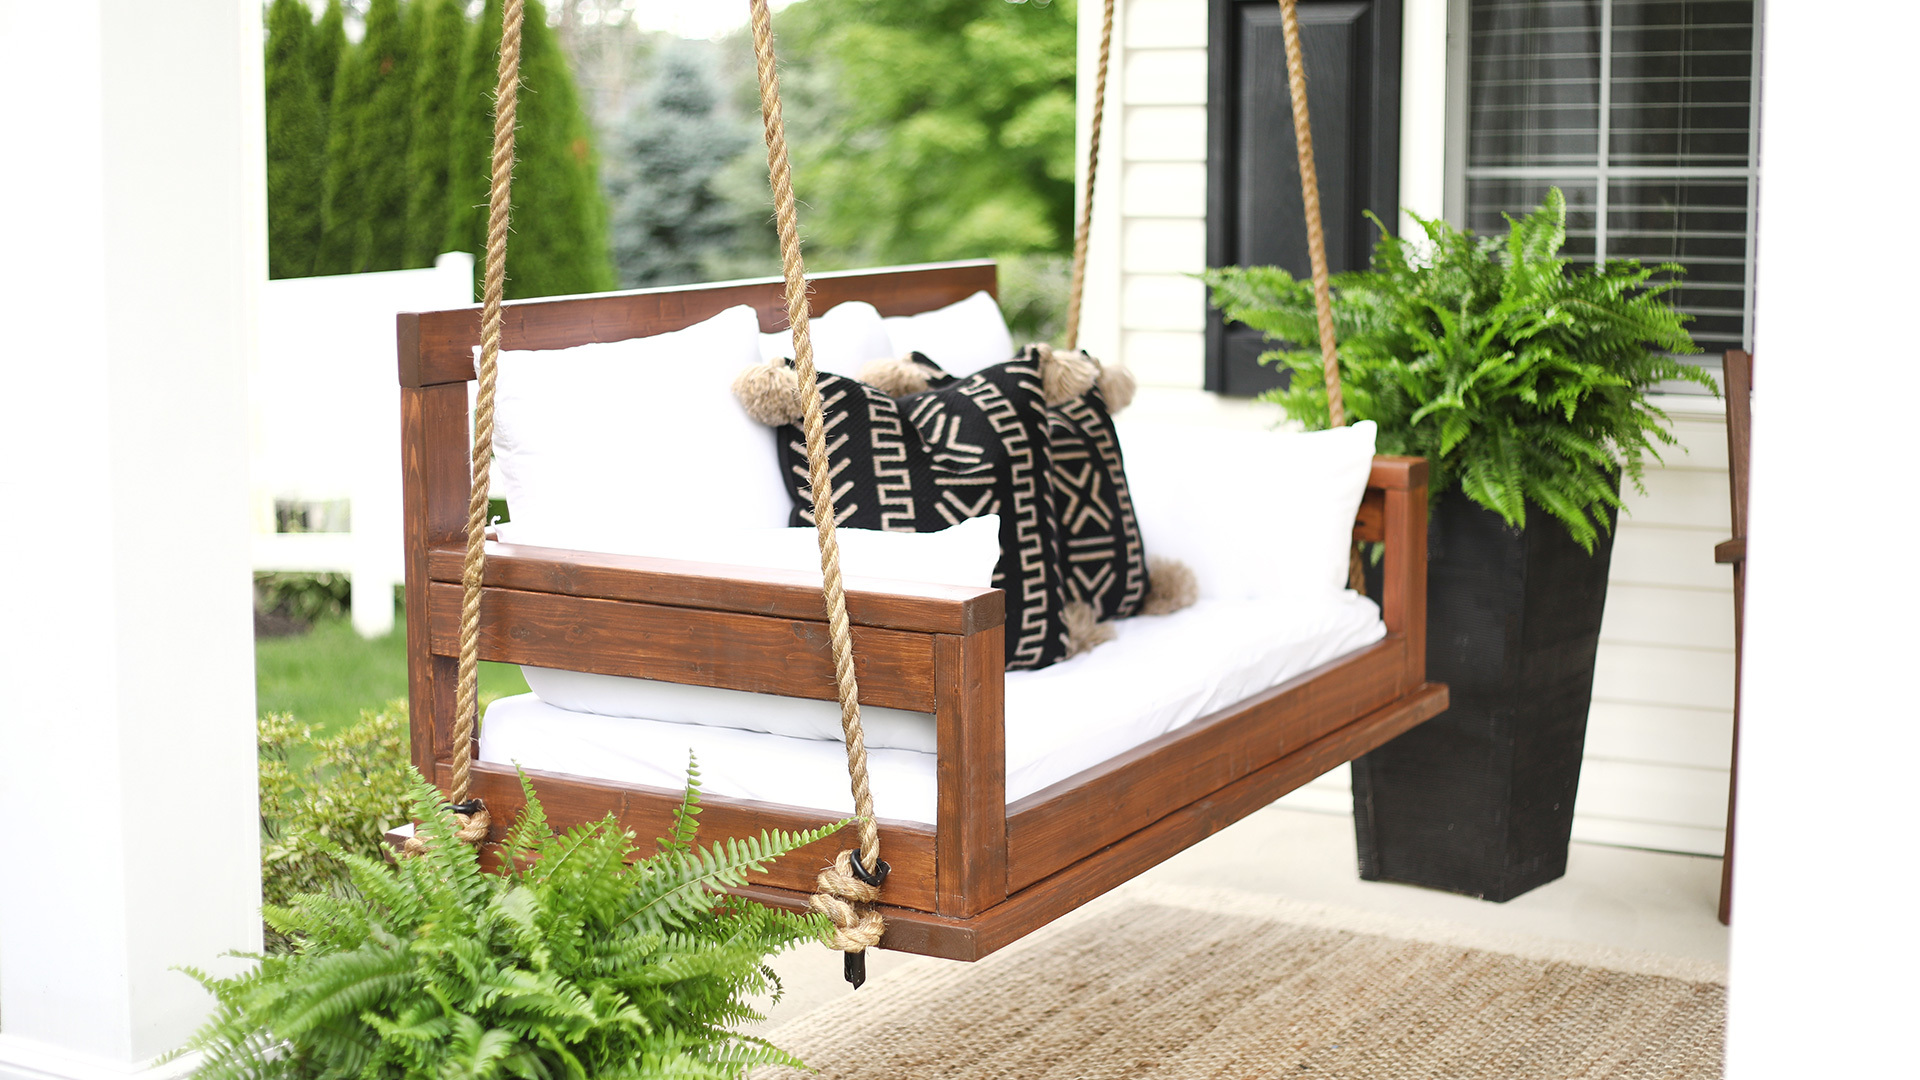 How To Build A Porch Swing This Old House